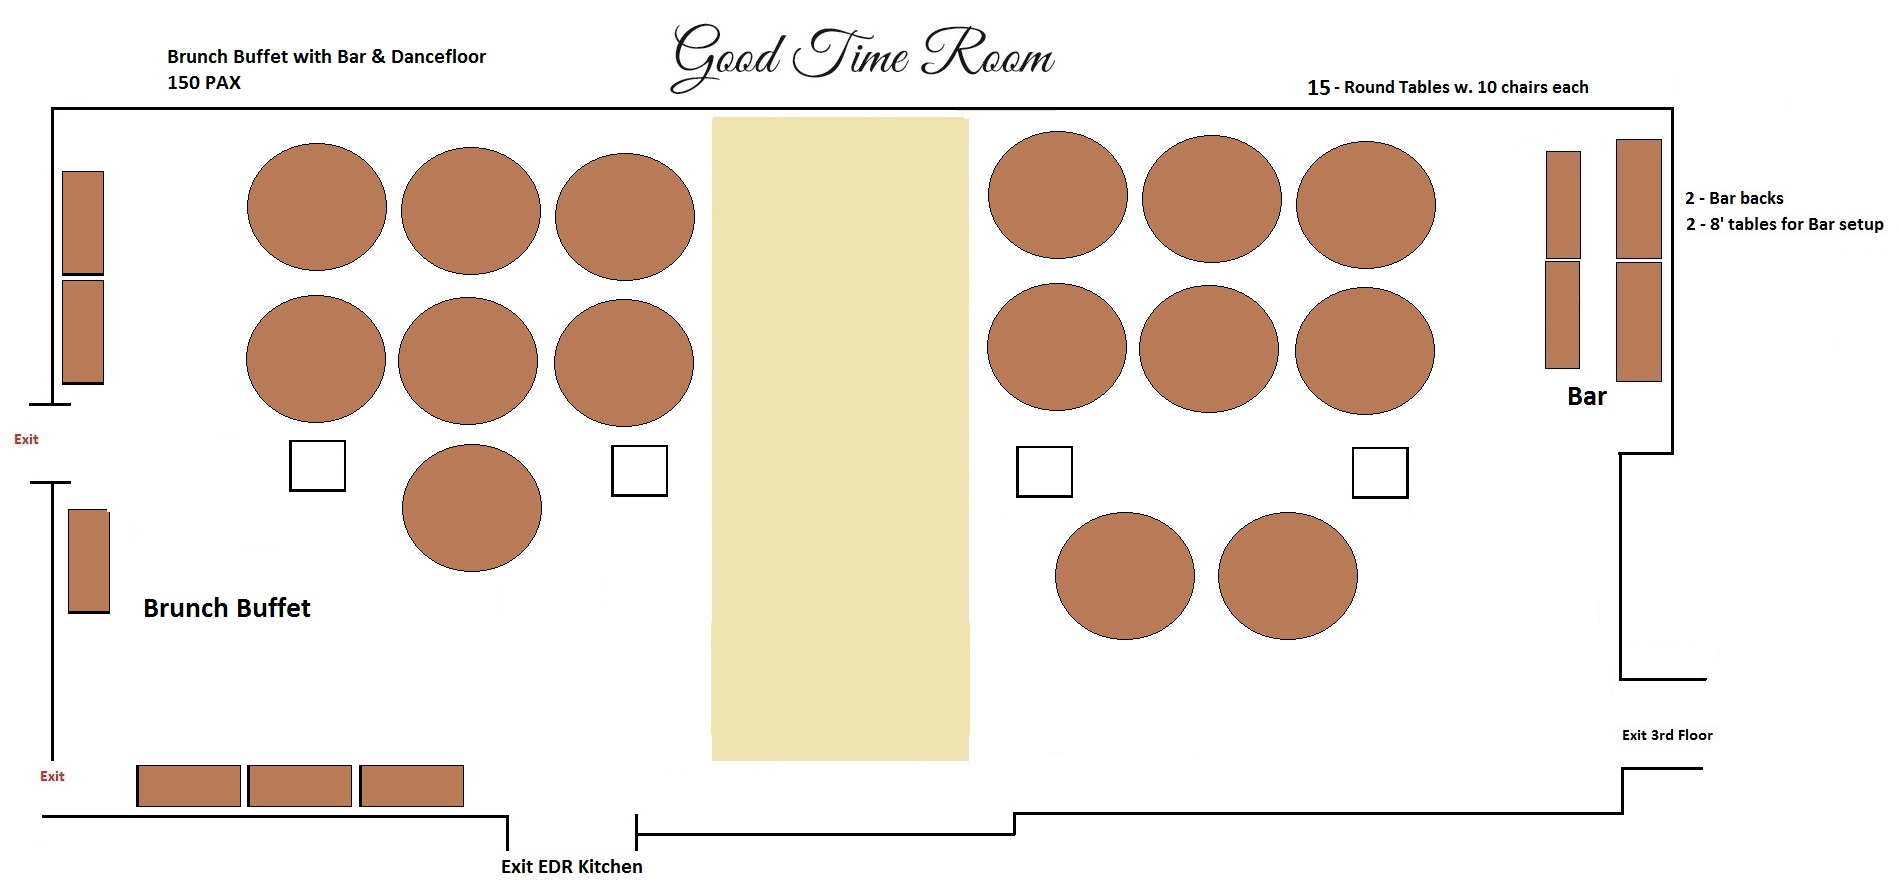 Good Time Room: Buffet Layout